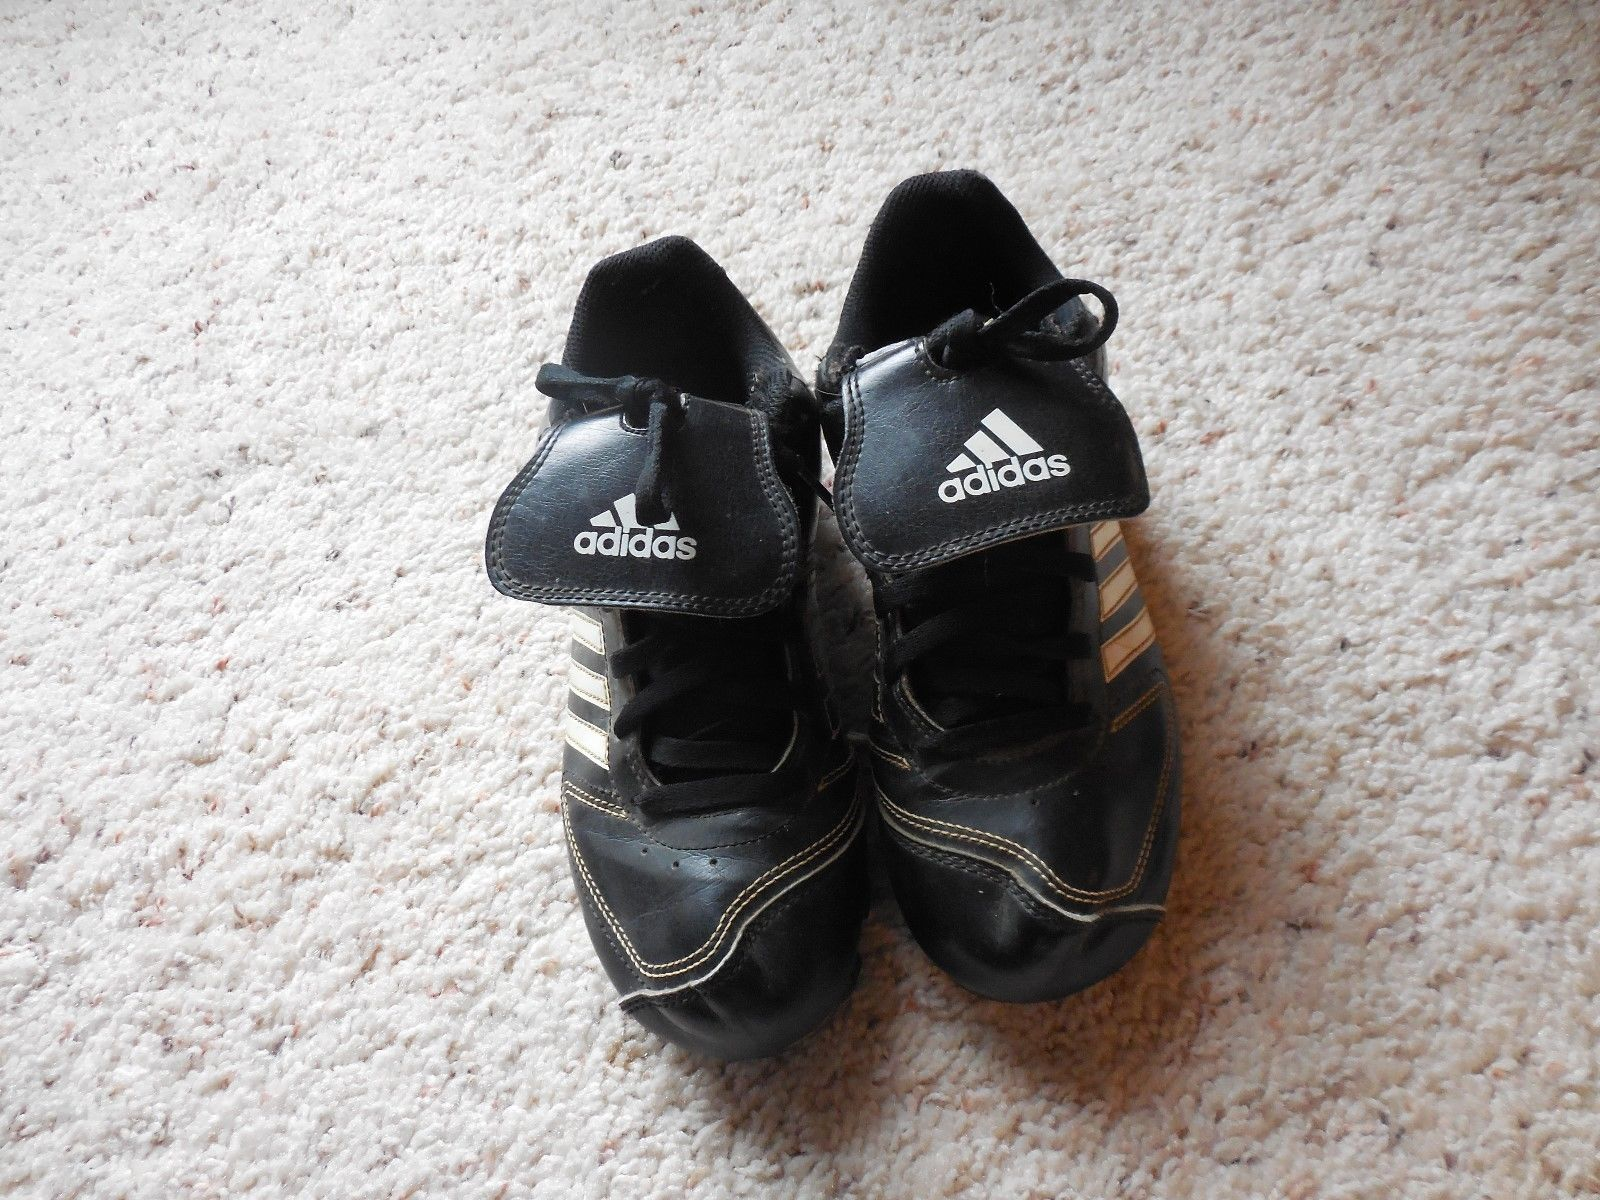 45905432b6f Adidas cleats size 2 youth Black with white and 50 similar items